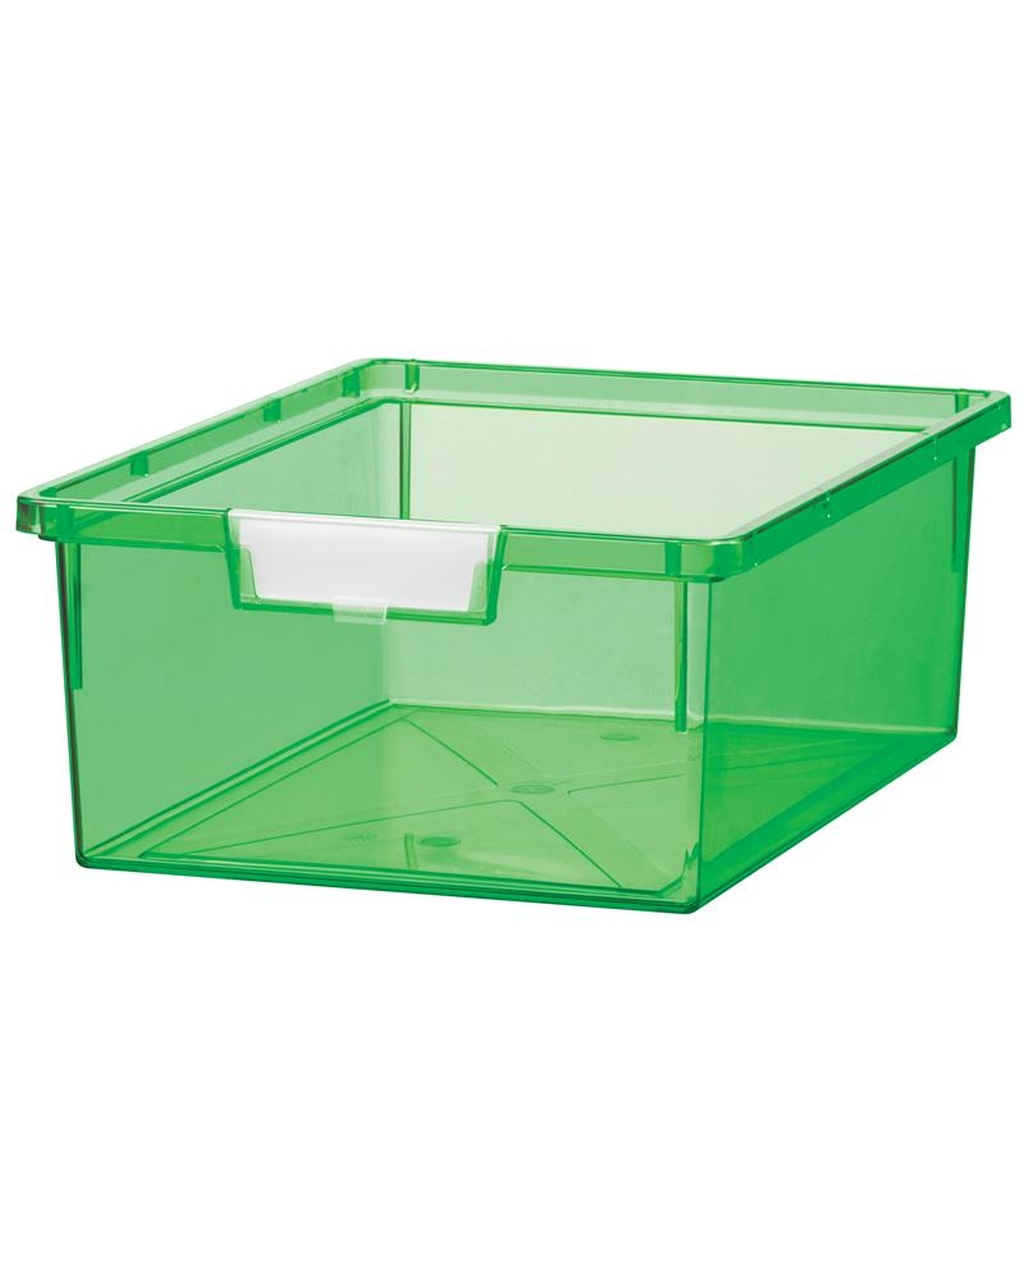 Shatterproof Double Depth Tray - Neon Green